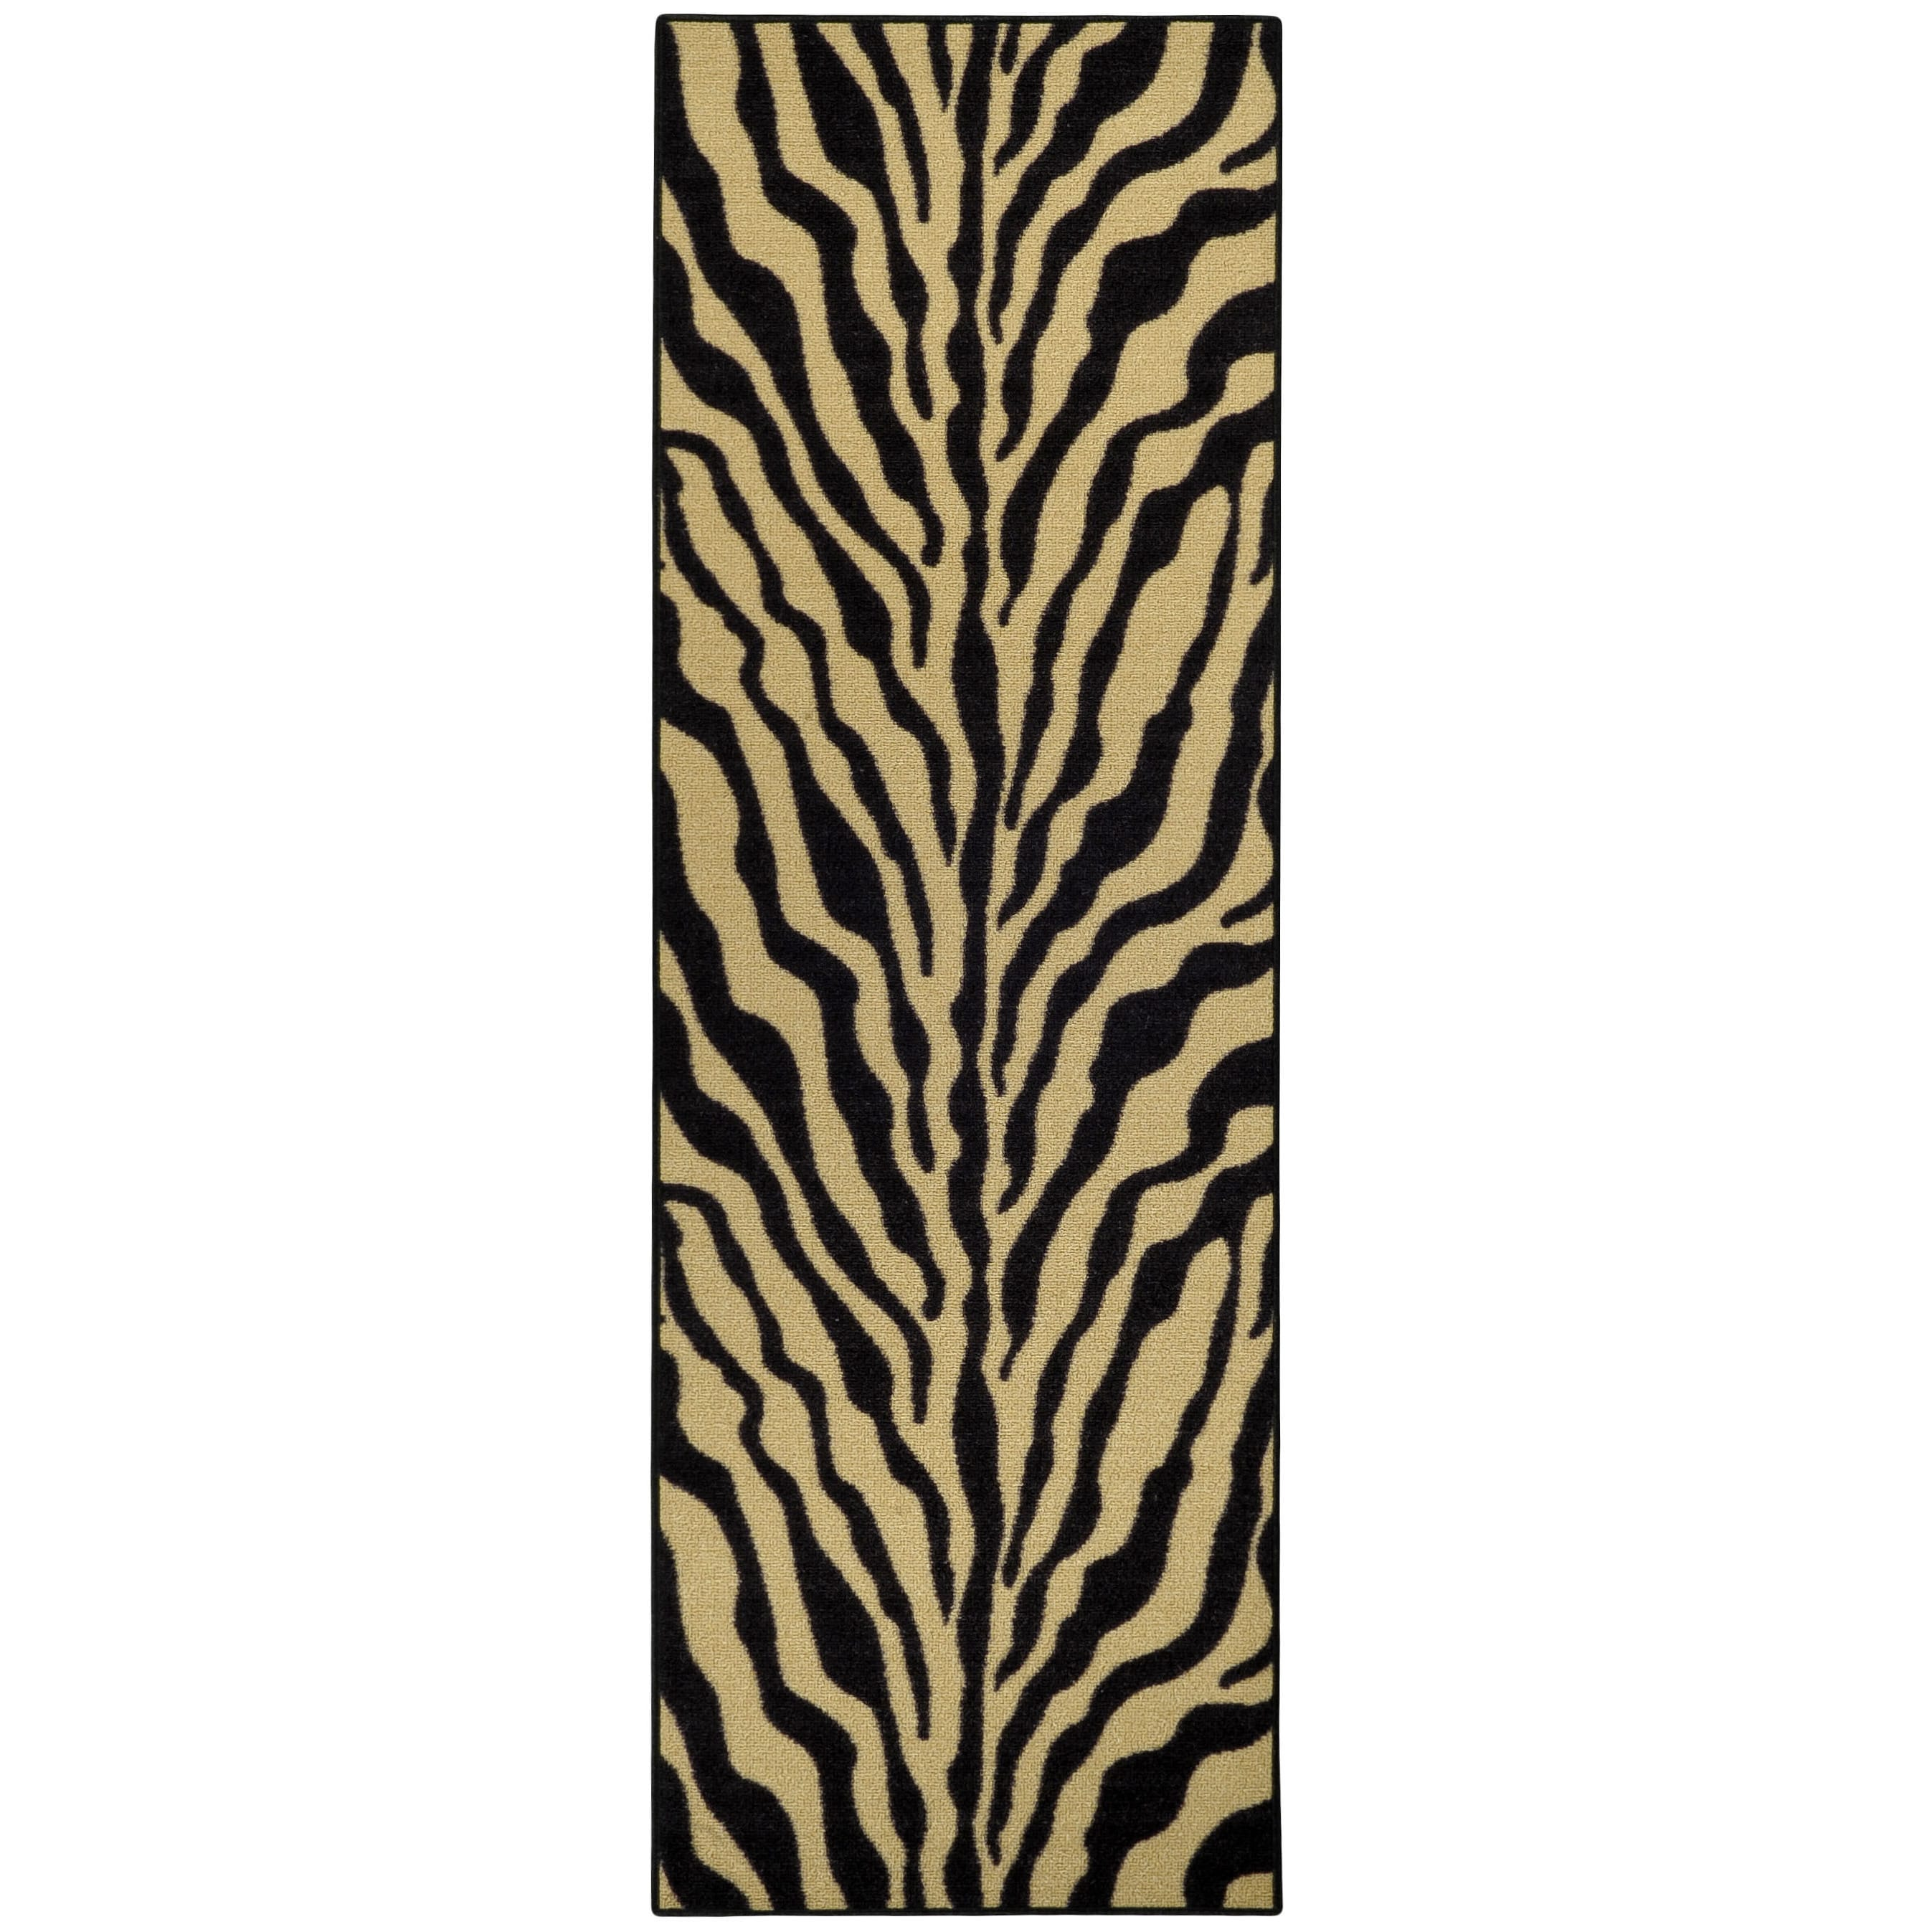 "Rubber Back Black and Ivory Tiger Print Non-Skid Runner Rug (22"" x 6'9) at Sears.com"